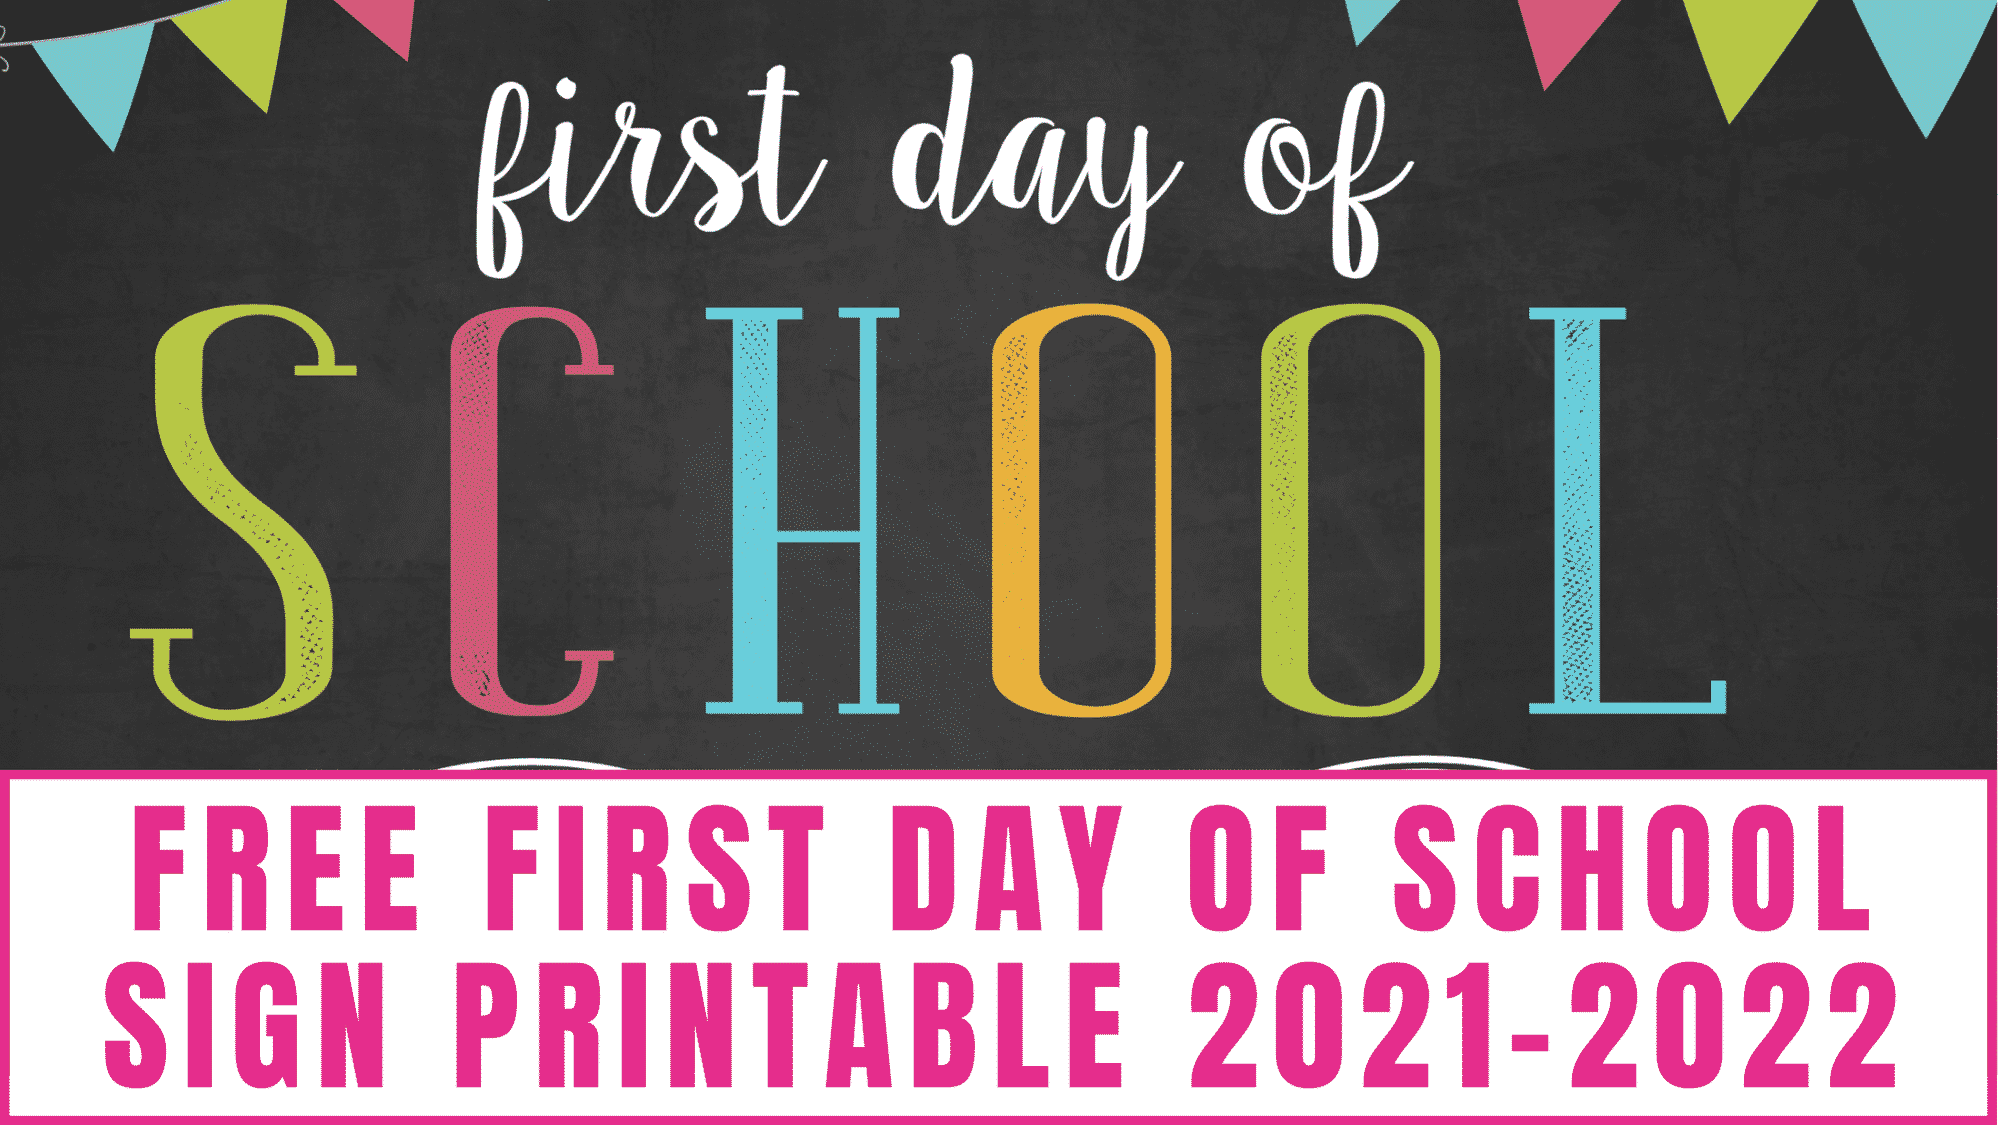 Want a cute chalkboard themed first day of school sign for free? This cheery free first day of school sign printable 2021-2022 will do the trick.